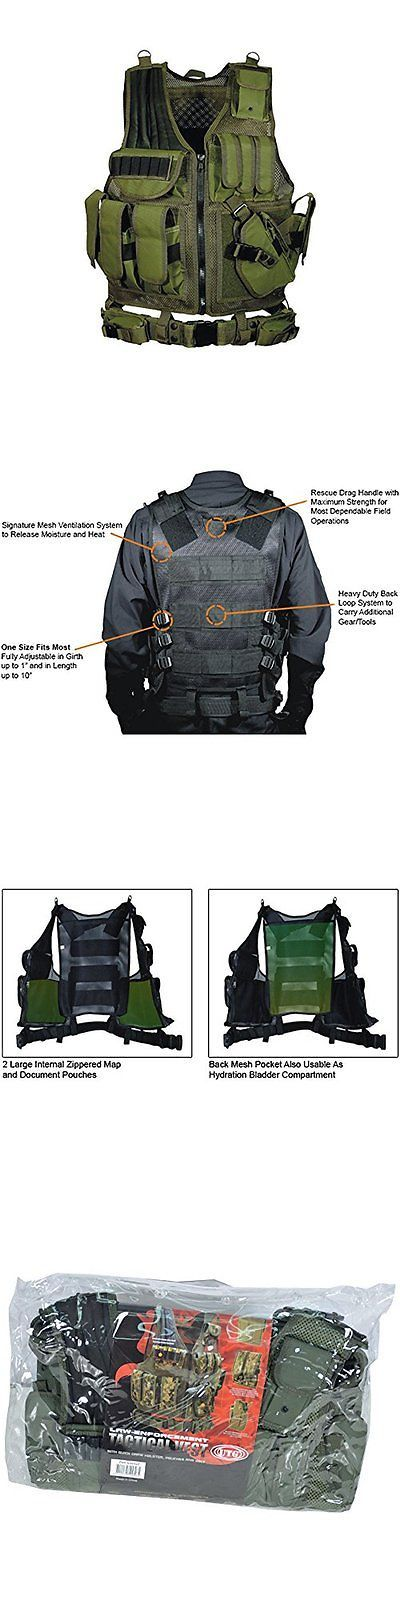 Clothing and Protective Gear 159044: Airsoft Deluxe Tactical Vest Od Green Swat Gear Molle Assault Military Holster BUY IT NOW ONLY: $78.15